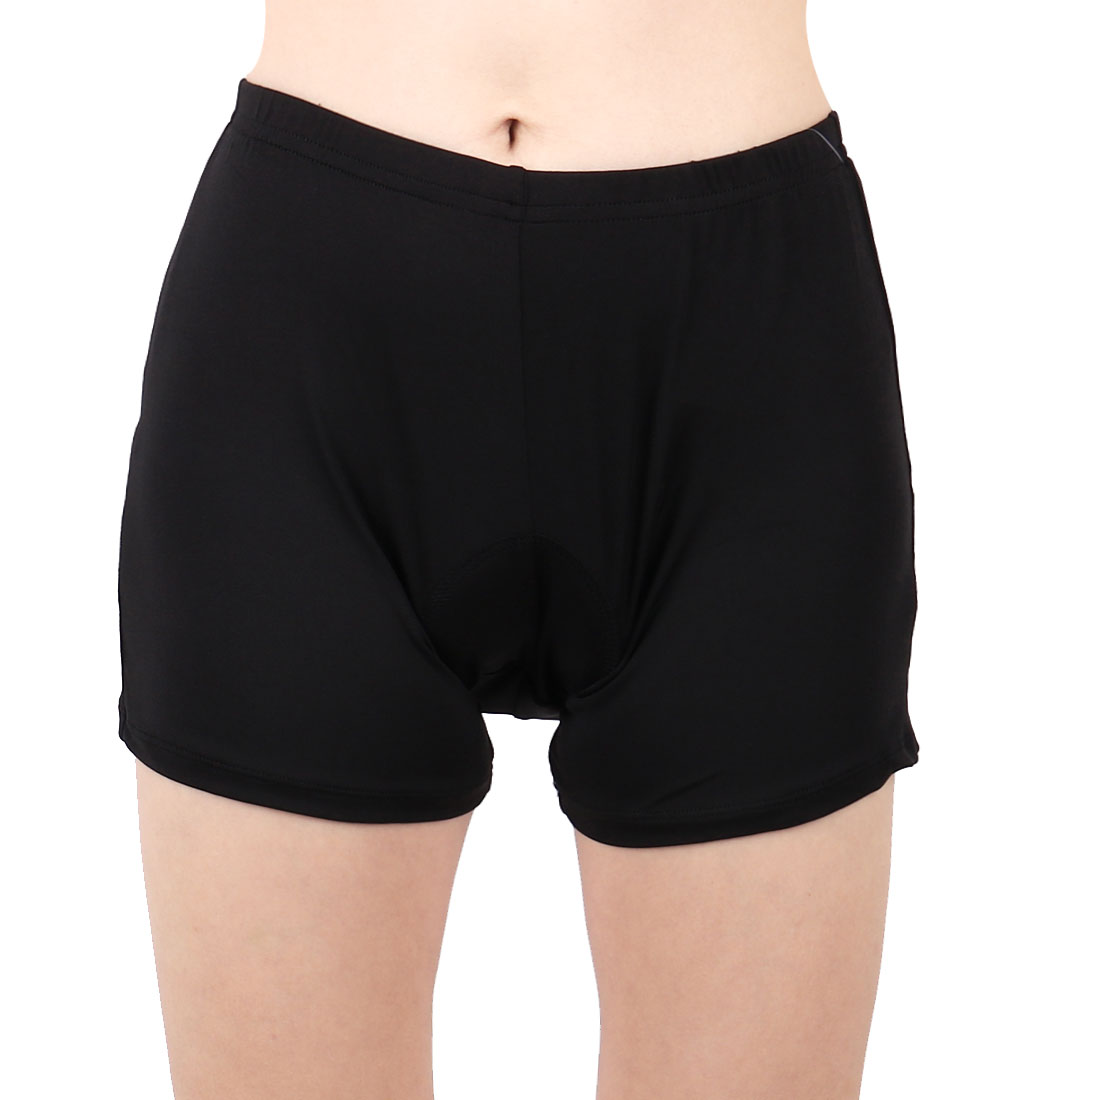 Women Polyester Outdoor Riding Bicycle Biking Underpants Cycling Shorts Black 2XL/M/L (US 8)